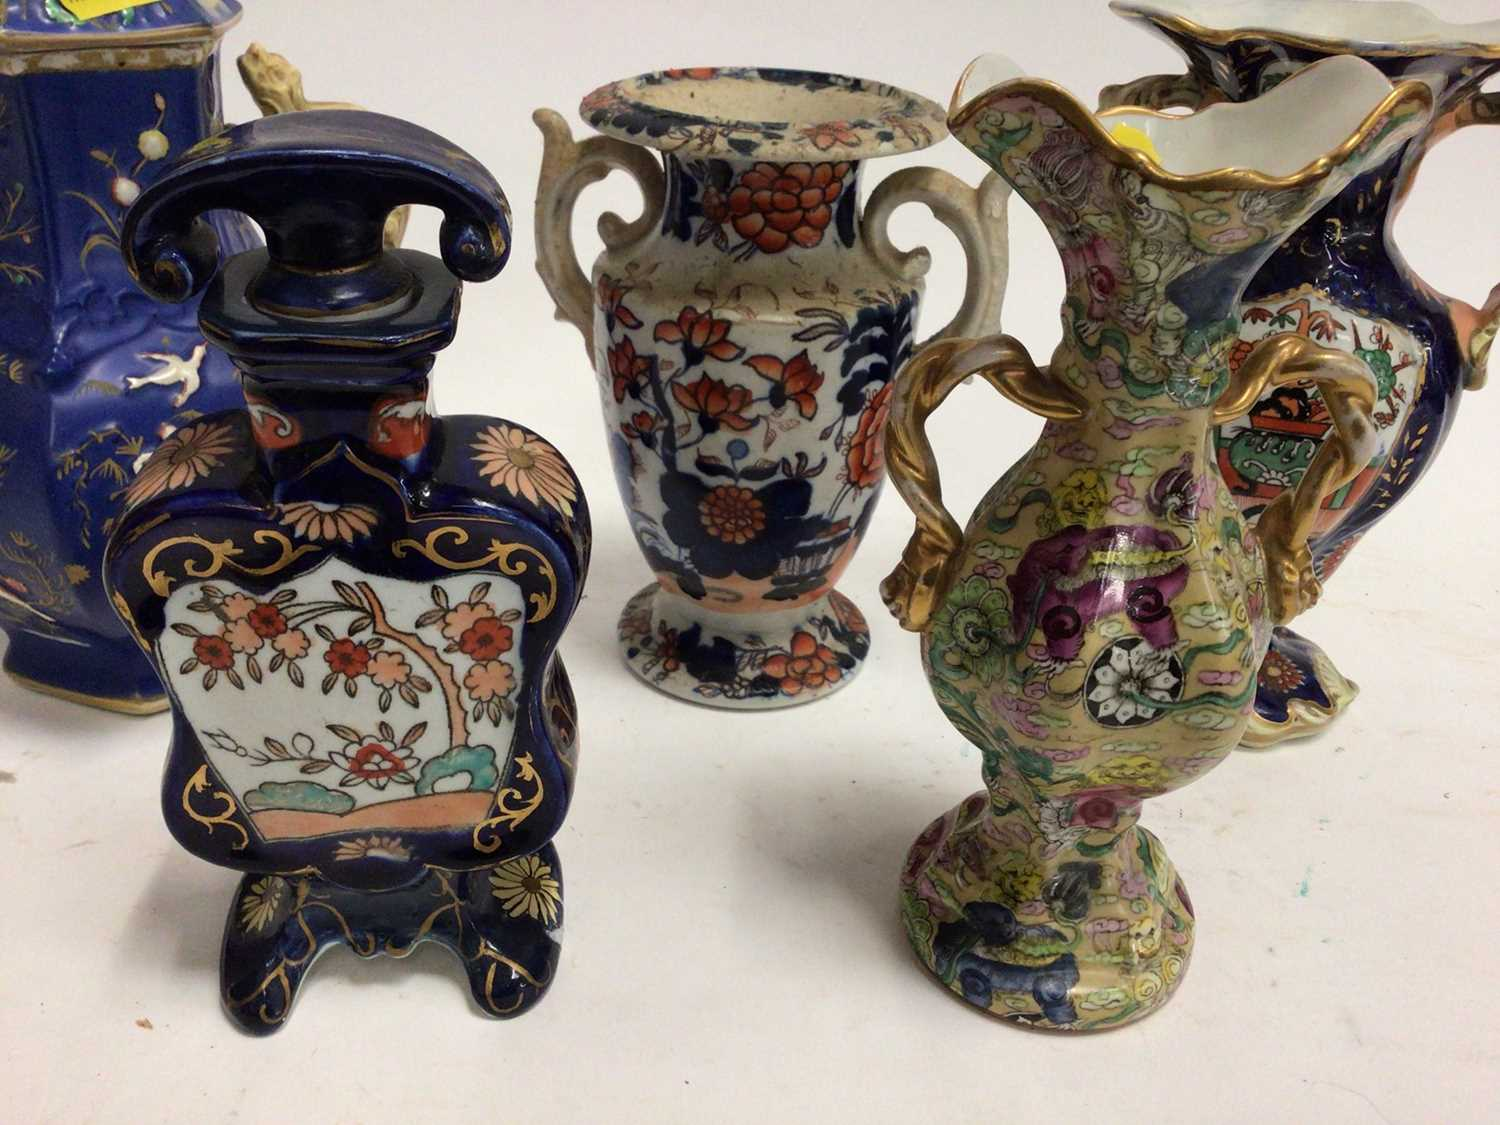 19th century Masons and Masons-style pottery, including four vases and a scent bottle, the largest v - Image 2 of 5